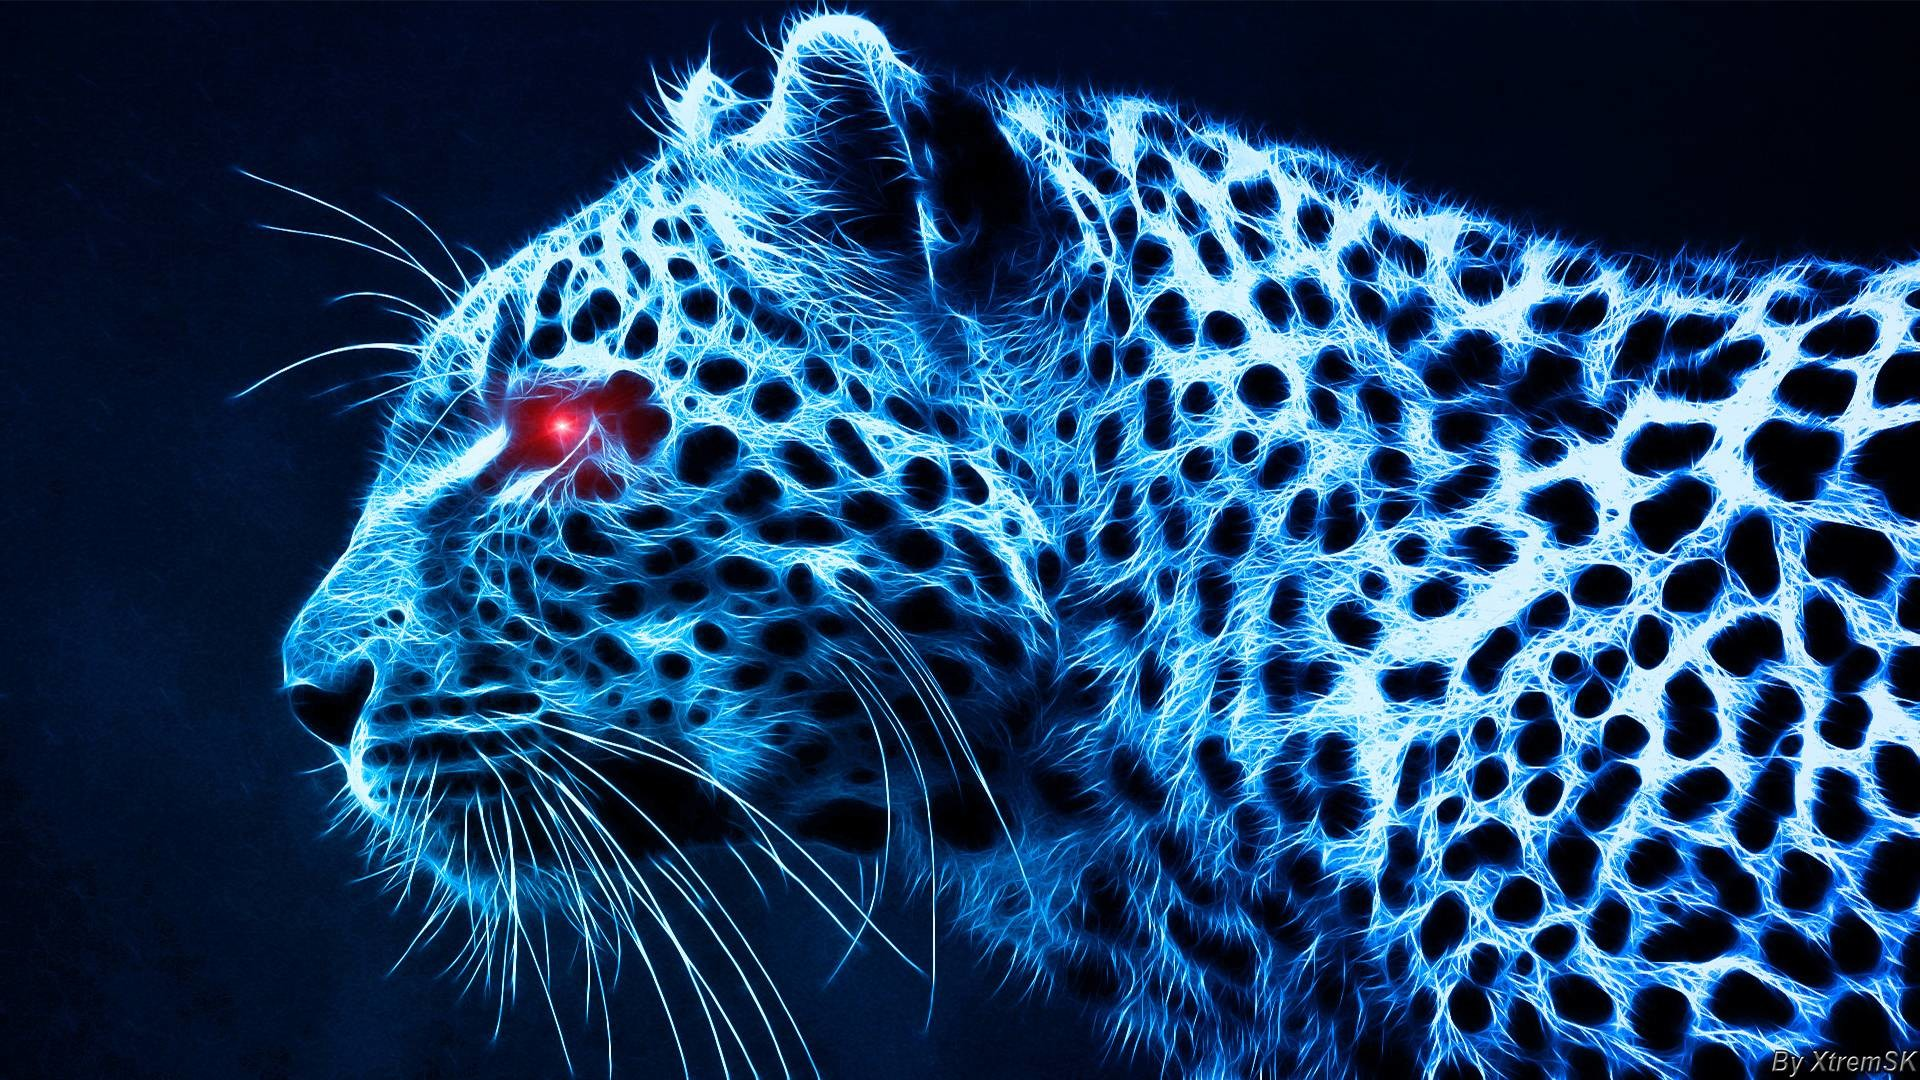 Wallpapers For > Blue Tiger Wallpaper Hd